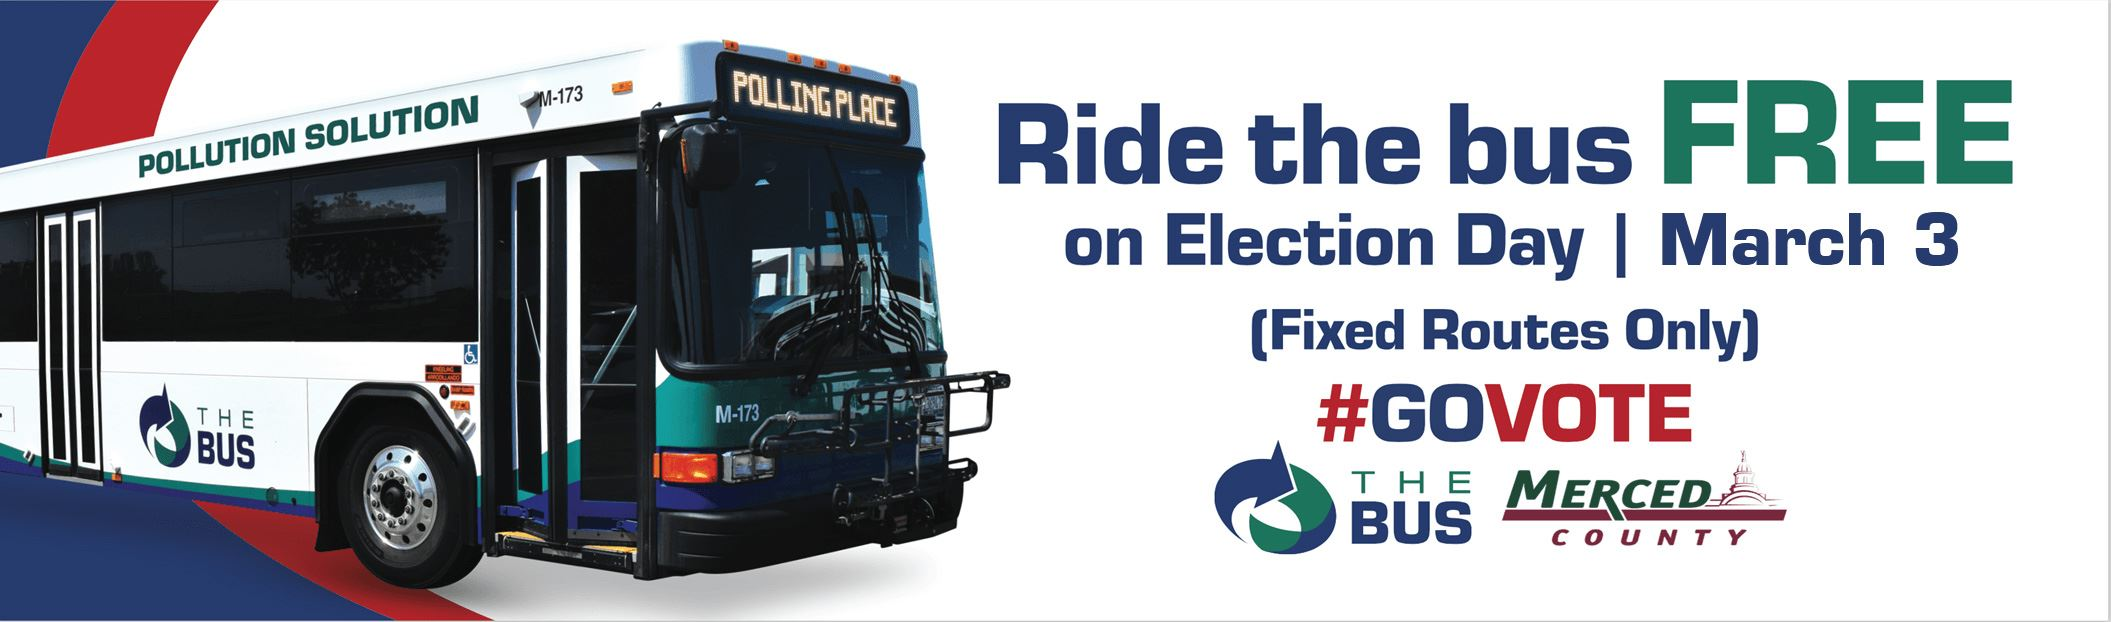 Ride the Bus Free On Election Day March 3rd Fixed Routes Only Opens in new window